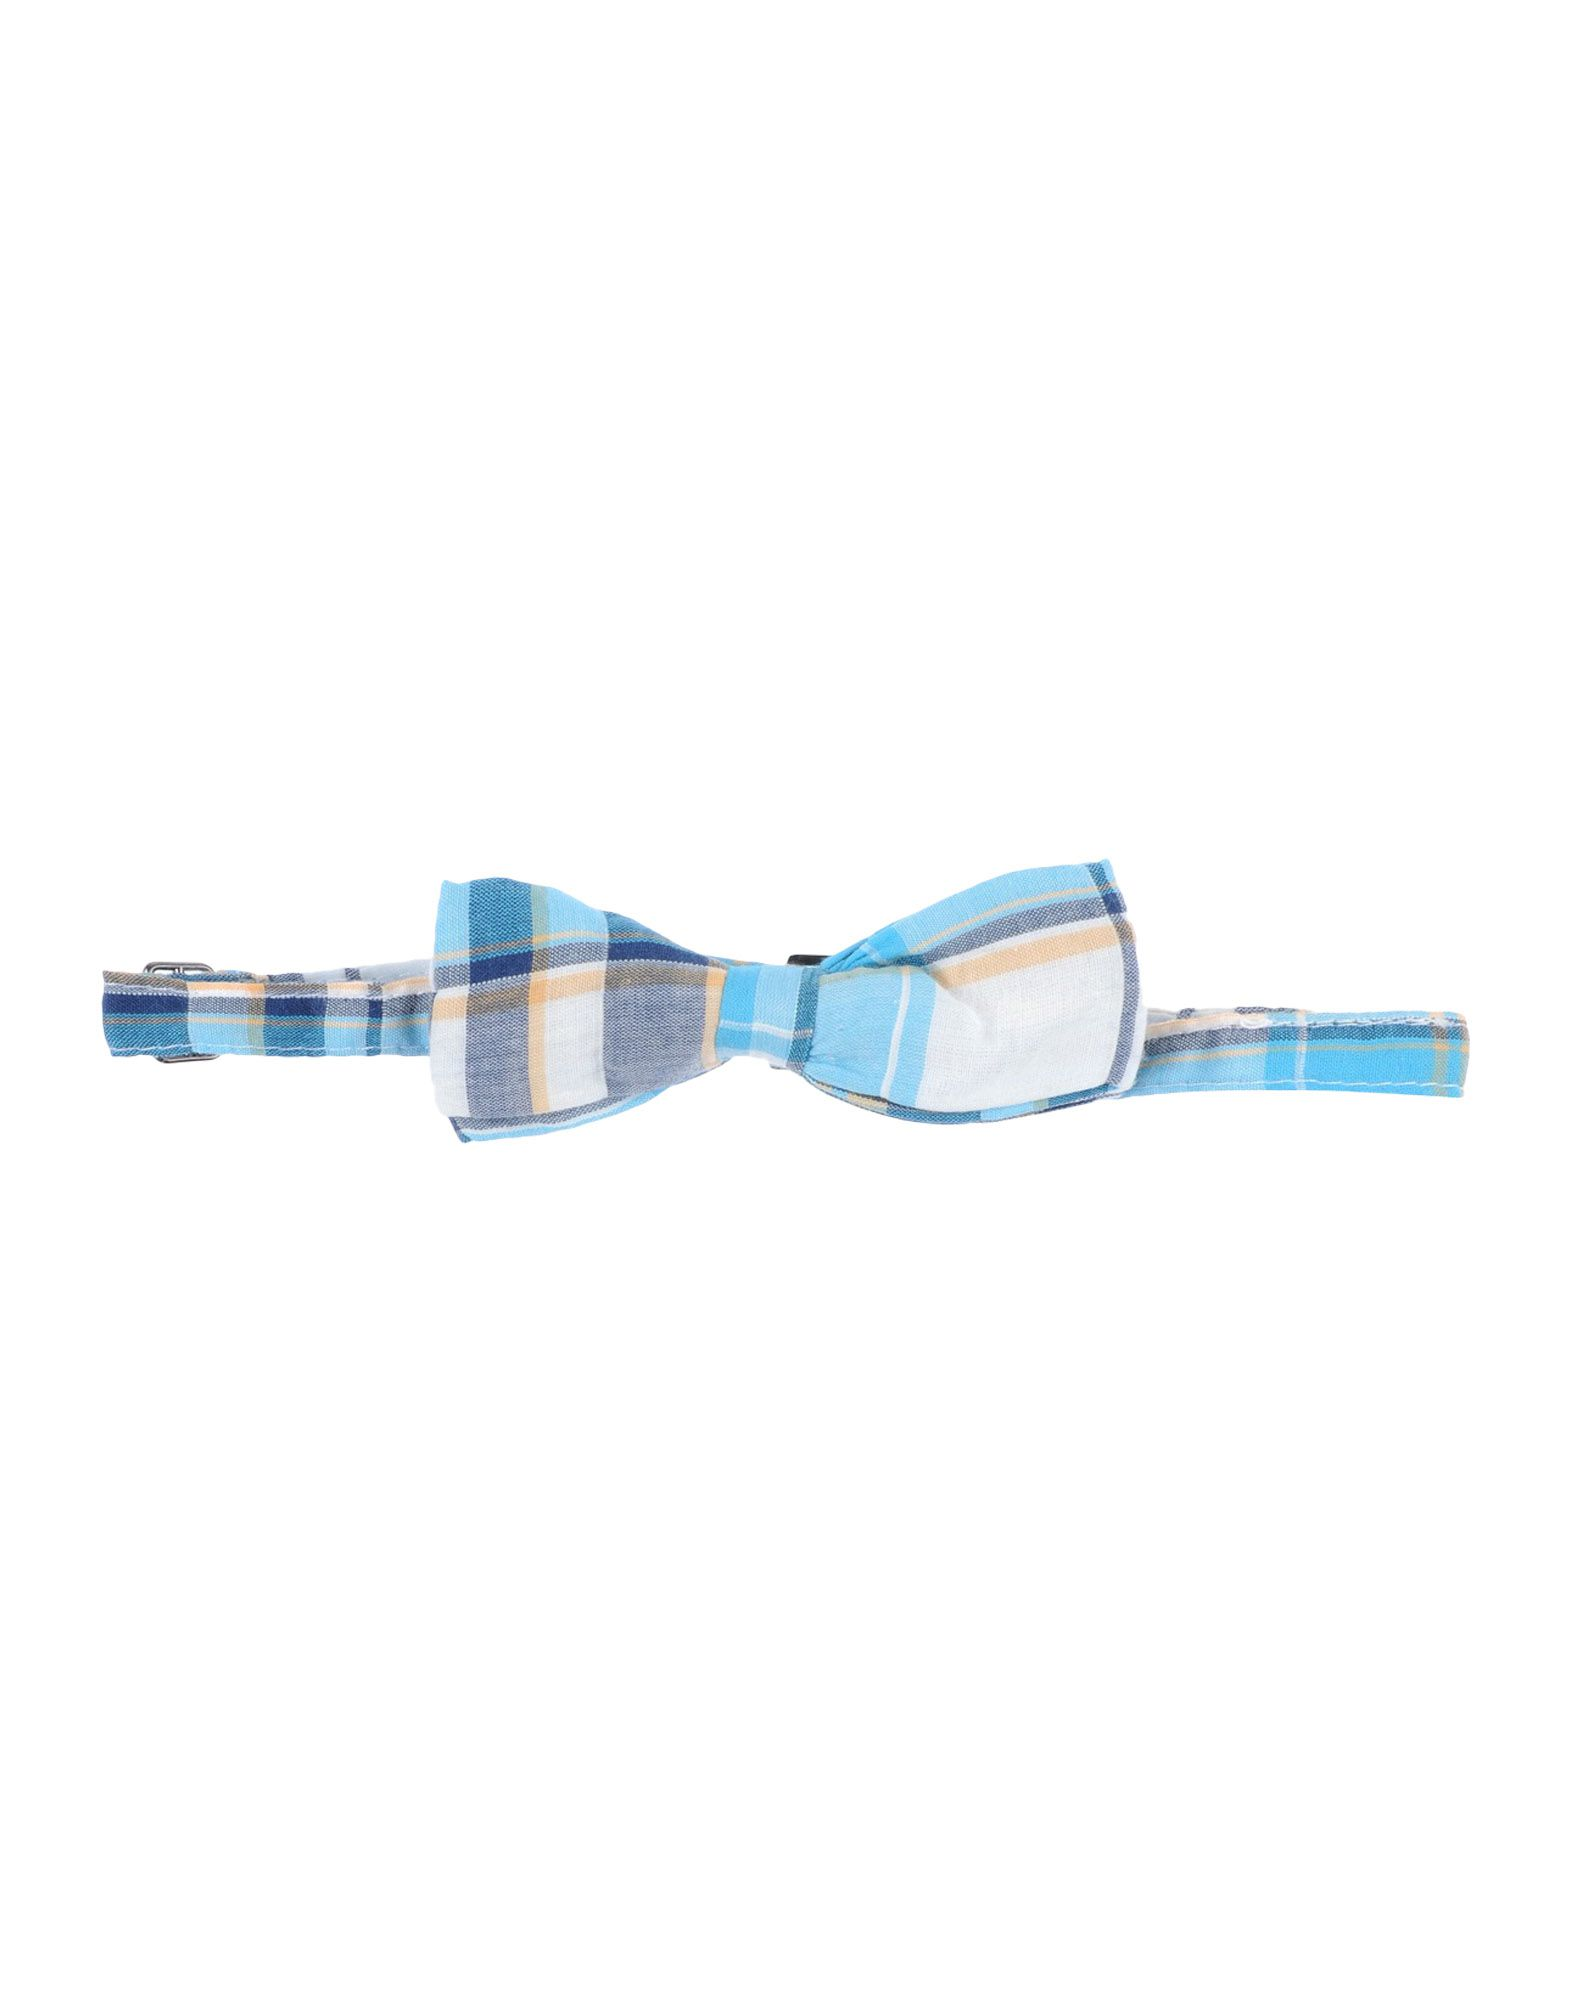 PEOPLE | (+) PEOPLE Bow Ties 46586729 | Goxip